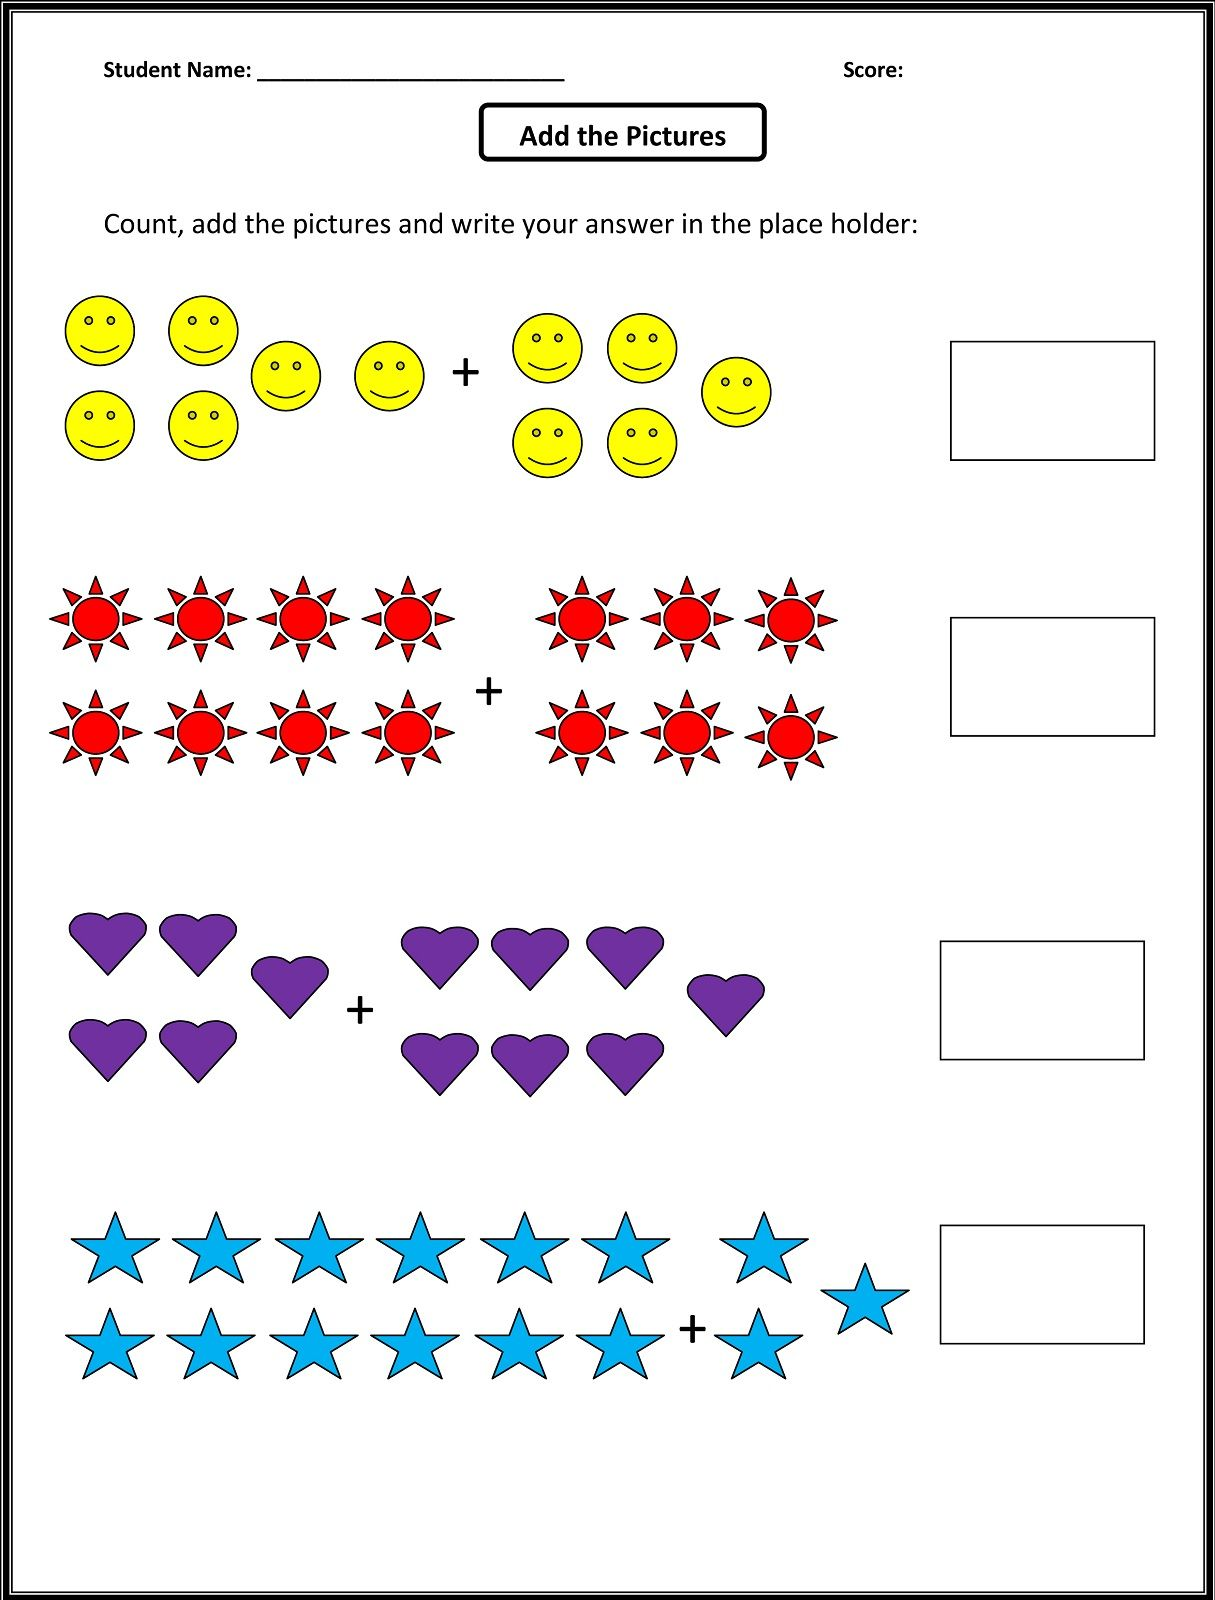 Worksheets Math For Kids Worksheets worksheets for 1st grade math activity shelter kids color by number valentines day here to read and write the numbers make use of charts of